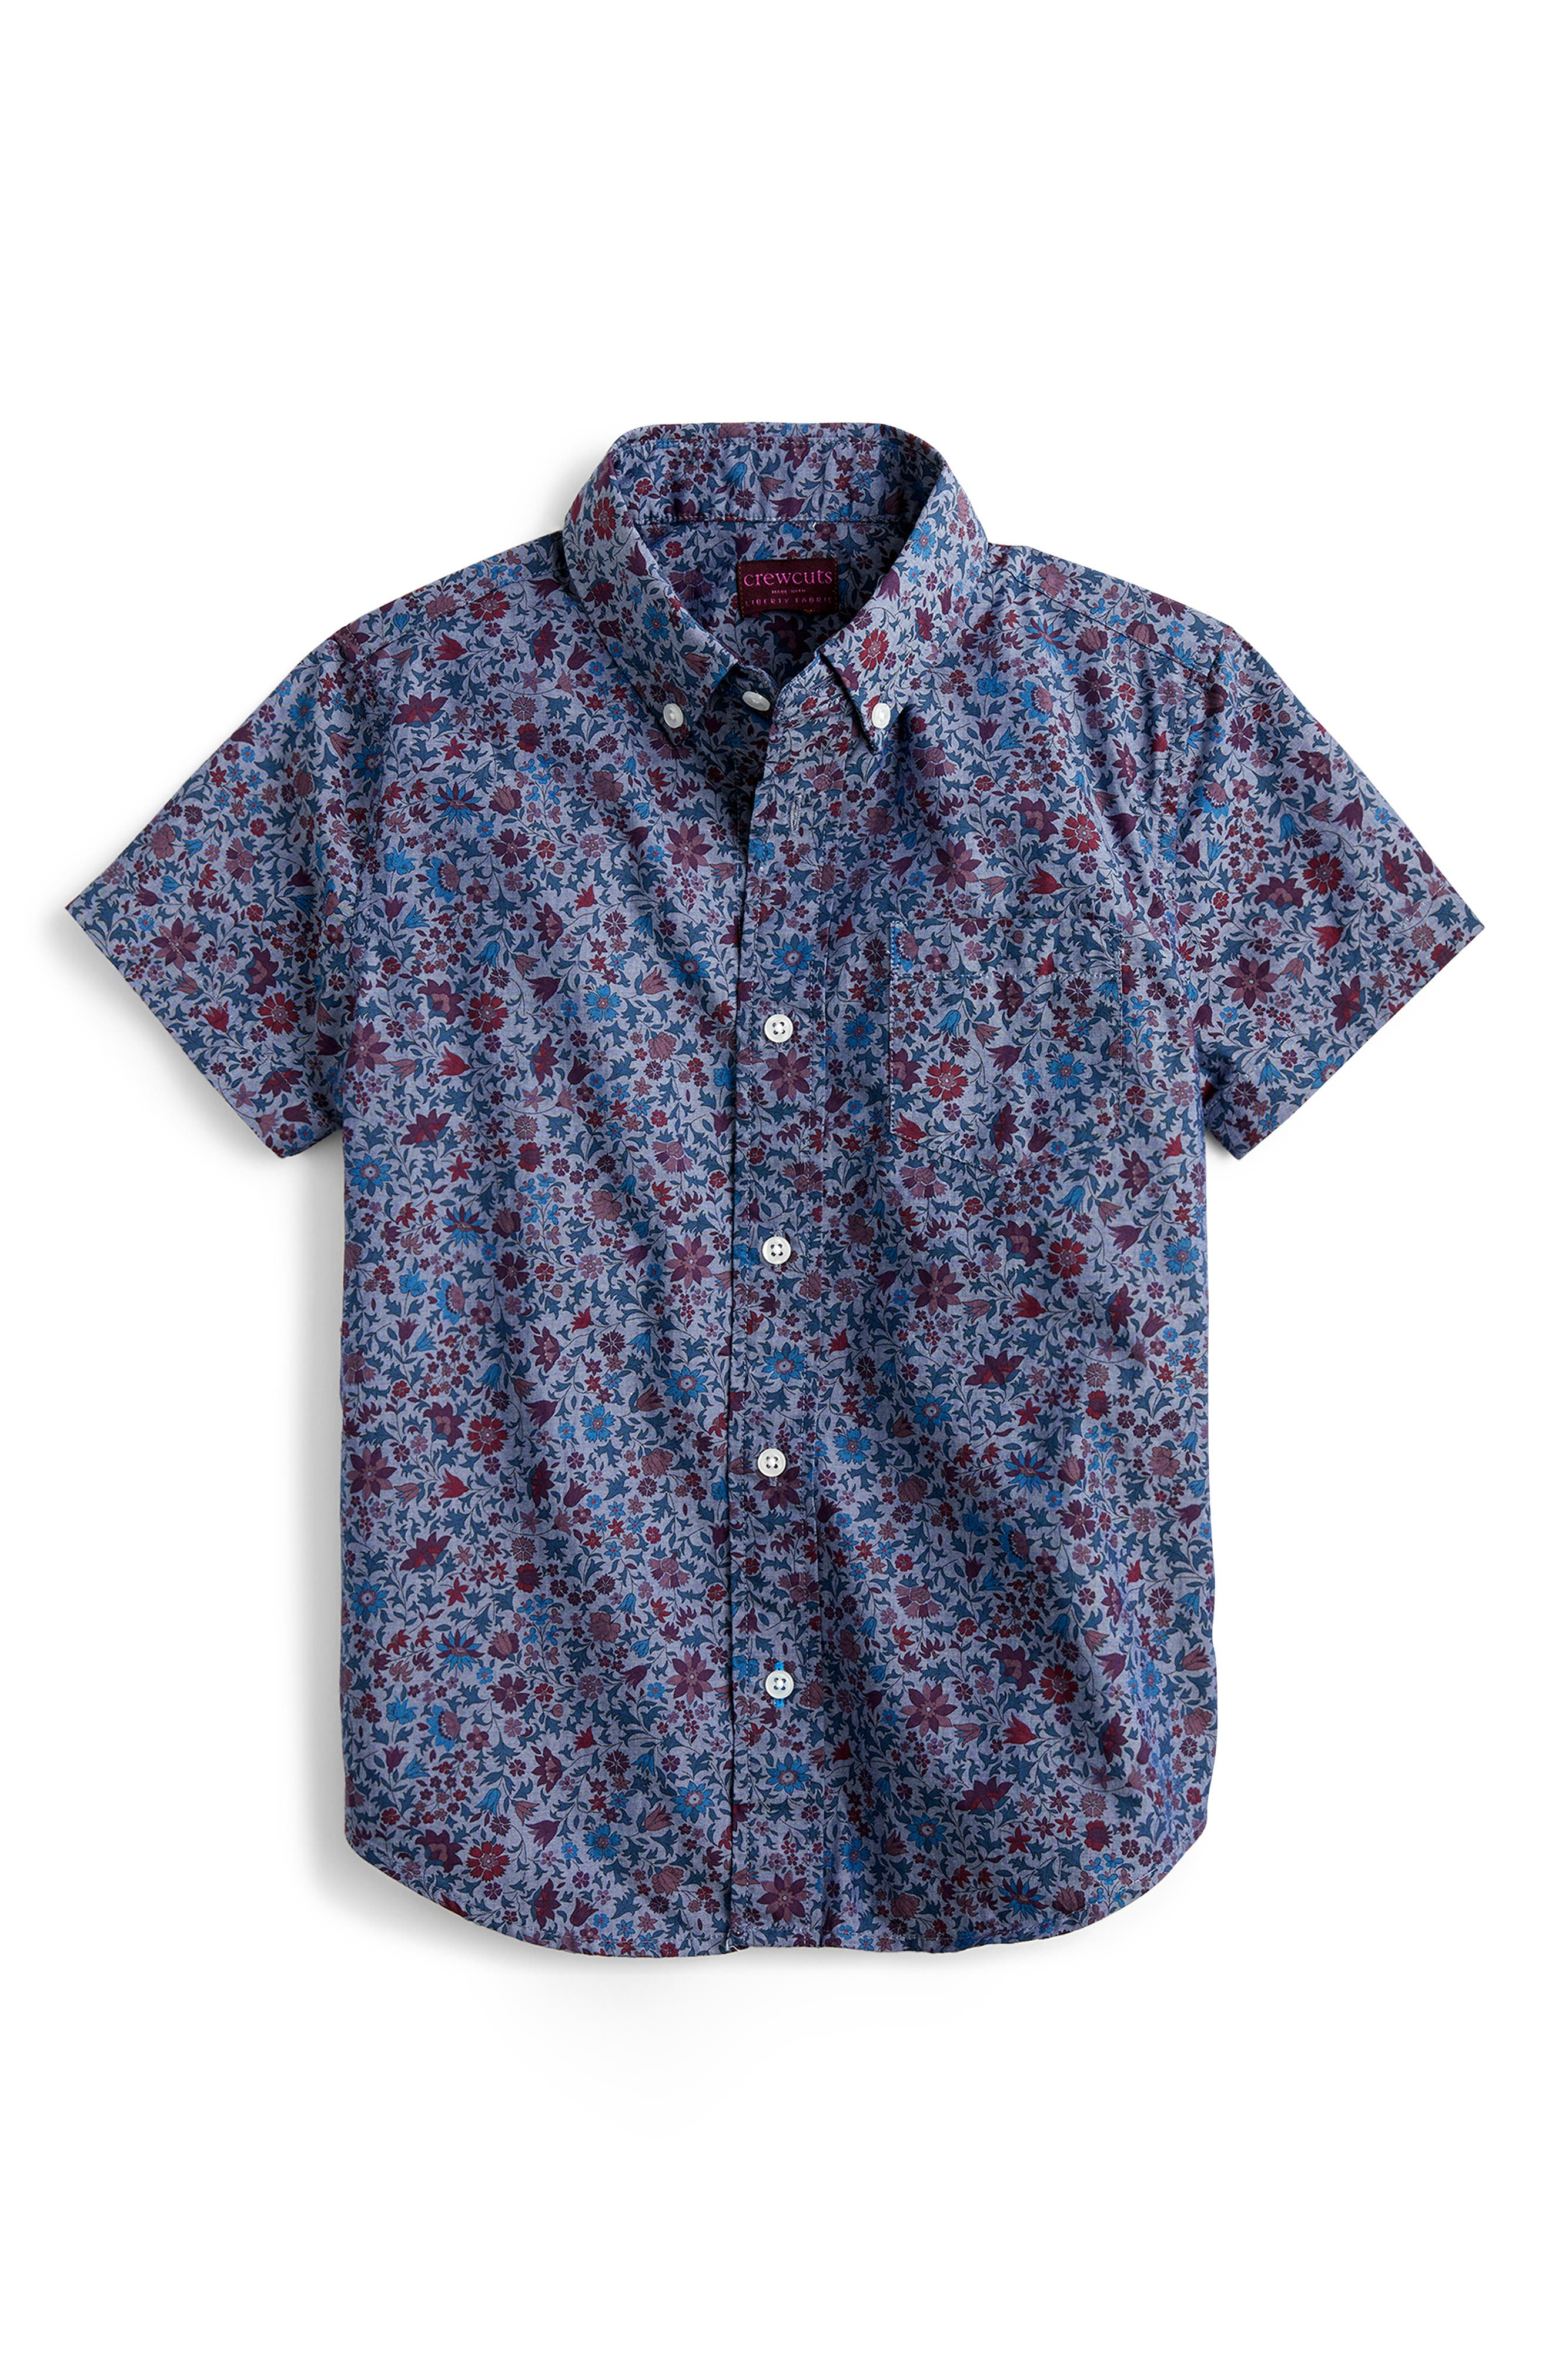 Toddler Boys Crewcuts By Jcrew Liberty Colombo Short Sleeve ButtonDown Shirt Size 2T  Blue